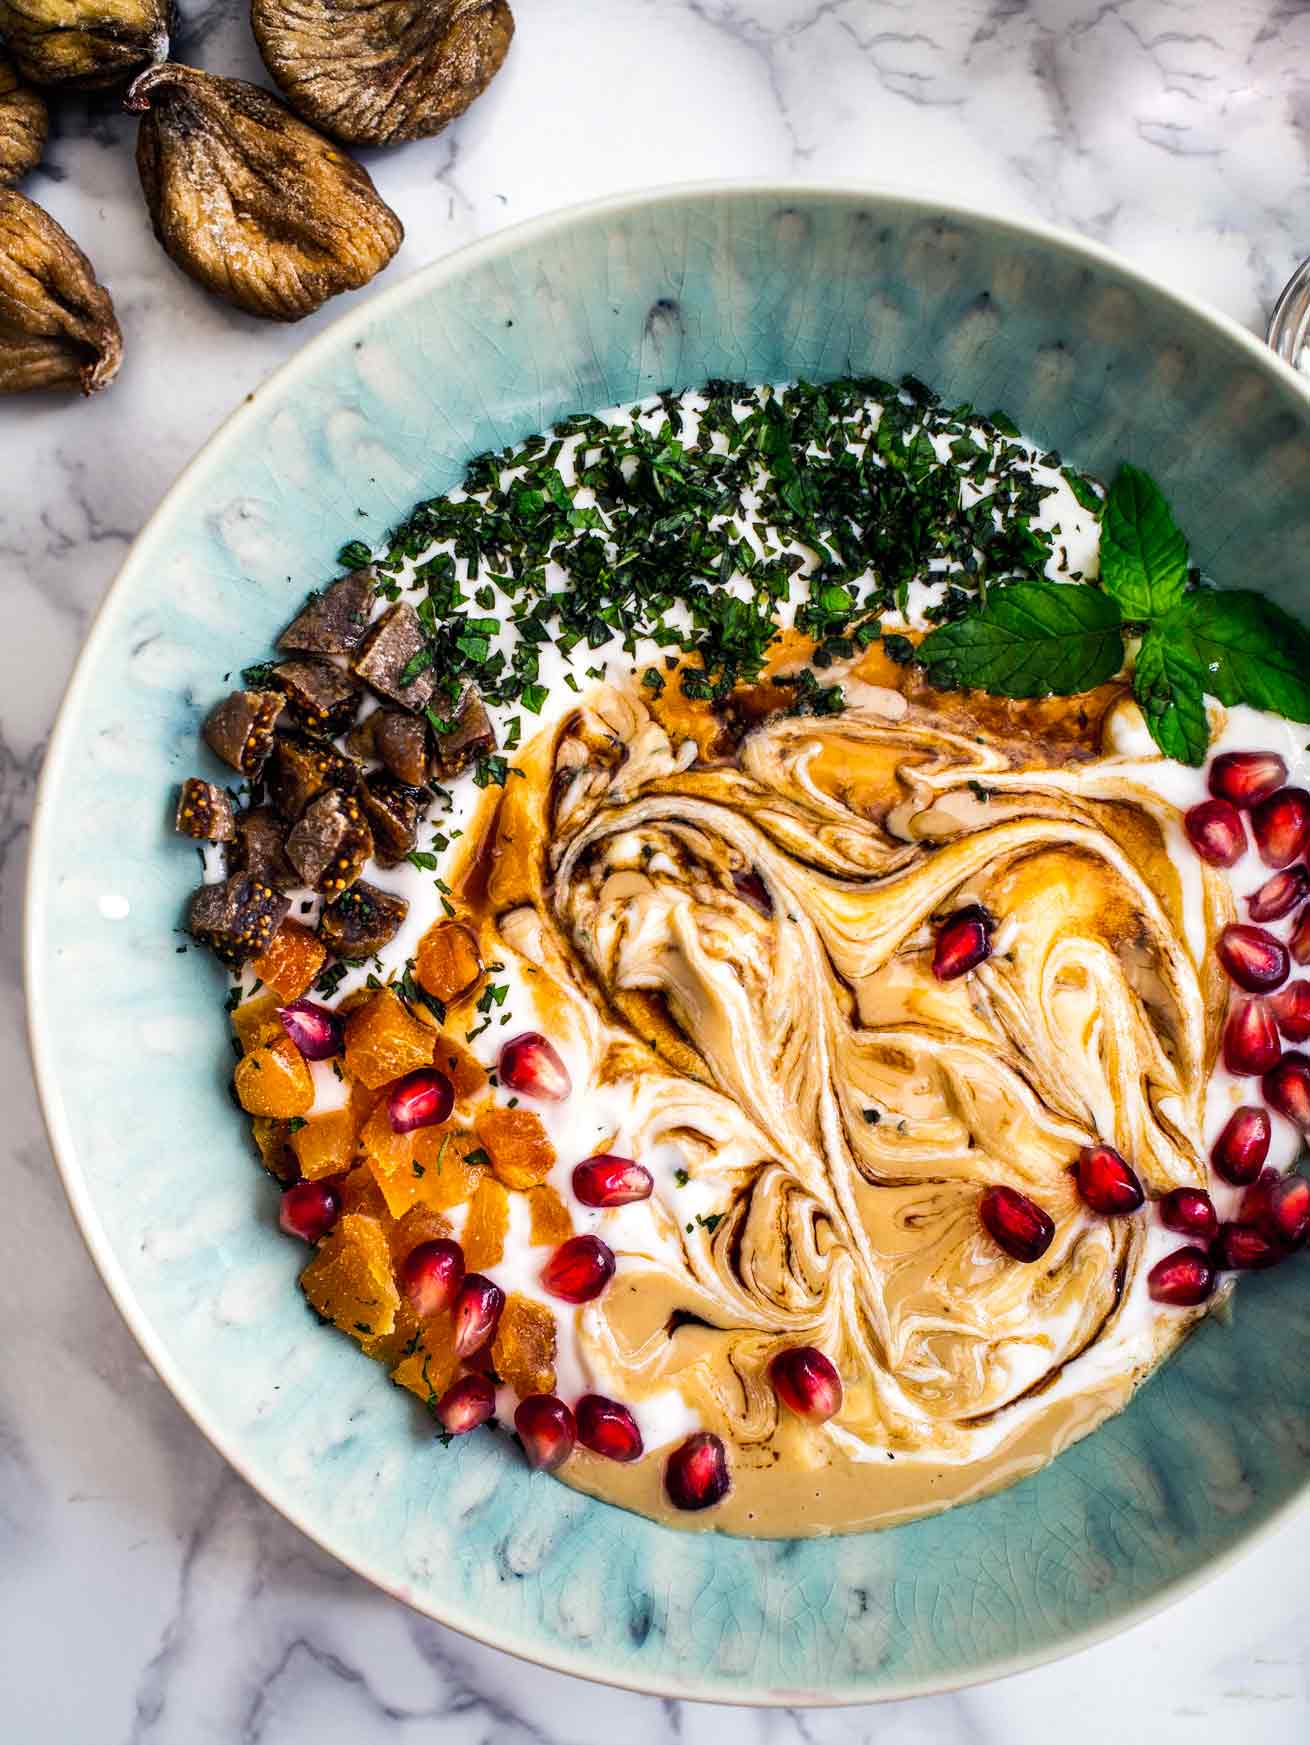 Pomegranate and Tahini Breakfast Bowl [Vegan] | Discover Delicious | www.discoverdelicious.org